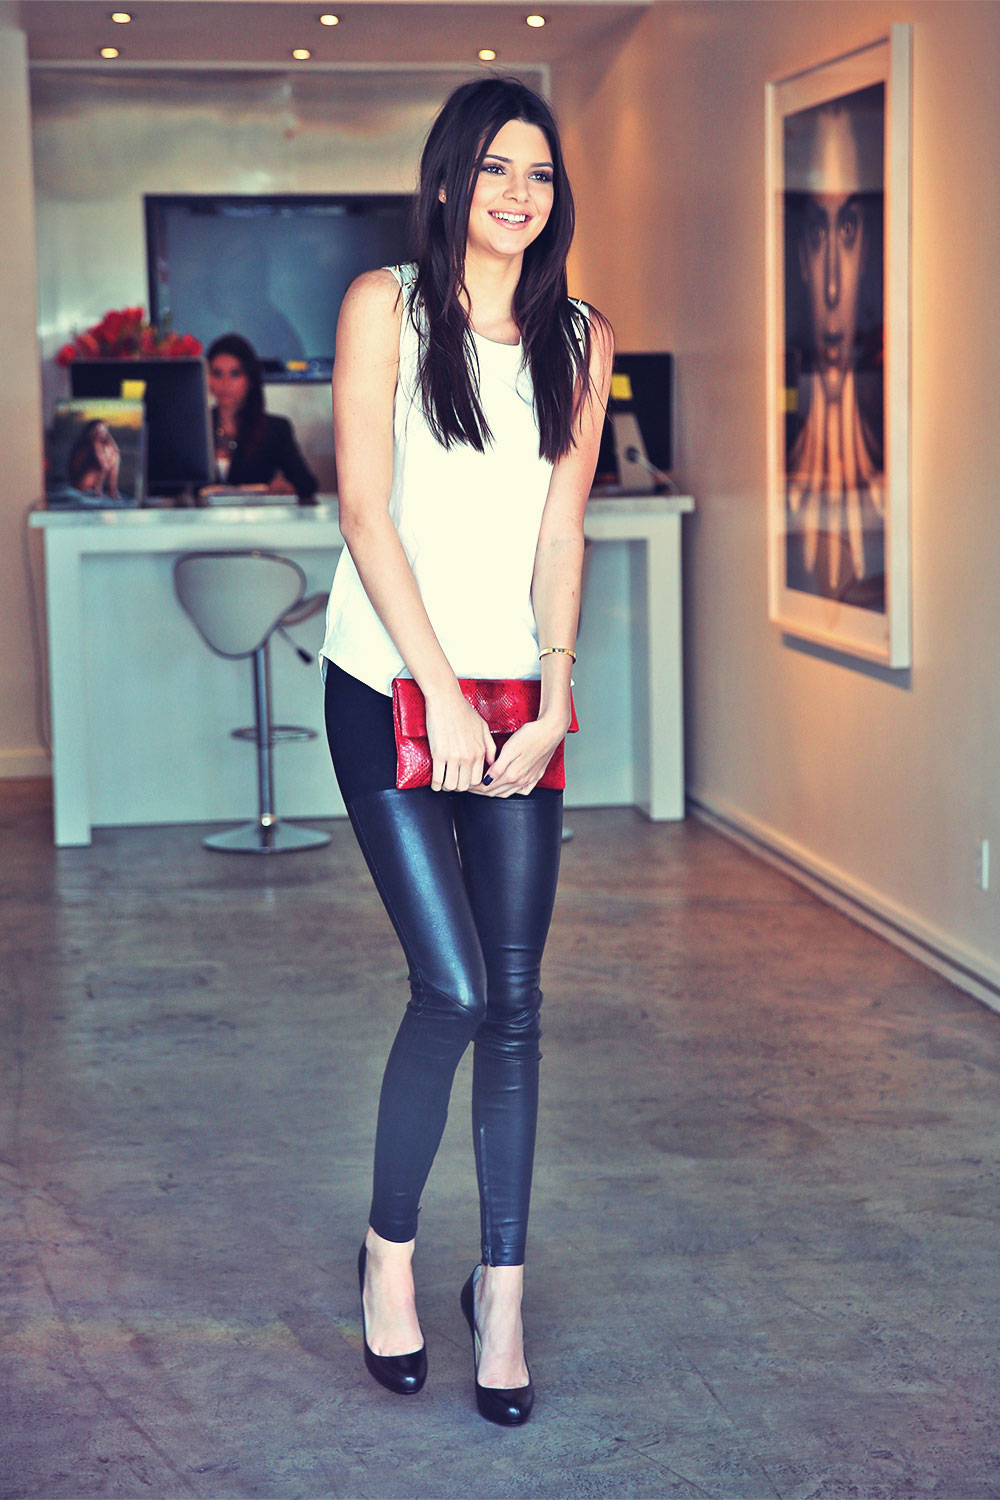 Kendall Jenner stops by a gallery